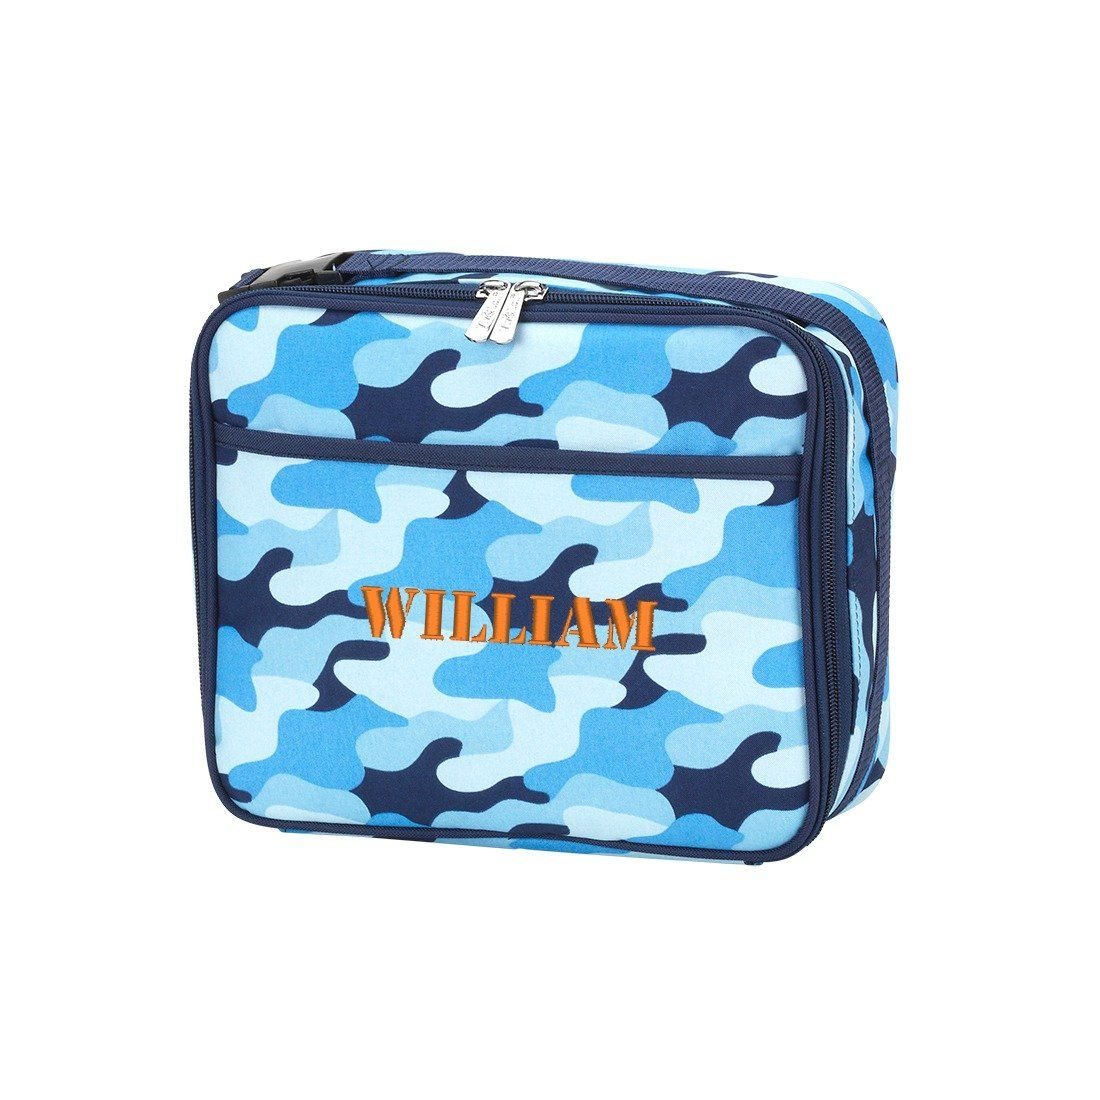 Personalised Name Boys Children/'s School Lunchbox Back to school Lunch bag